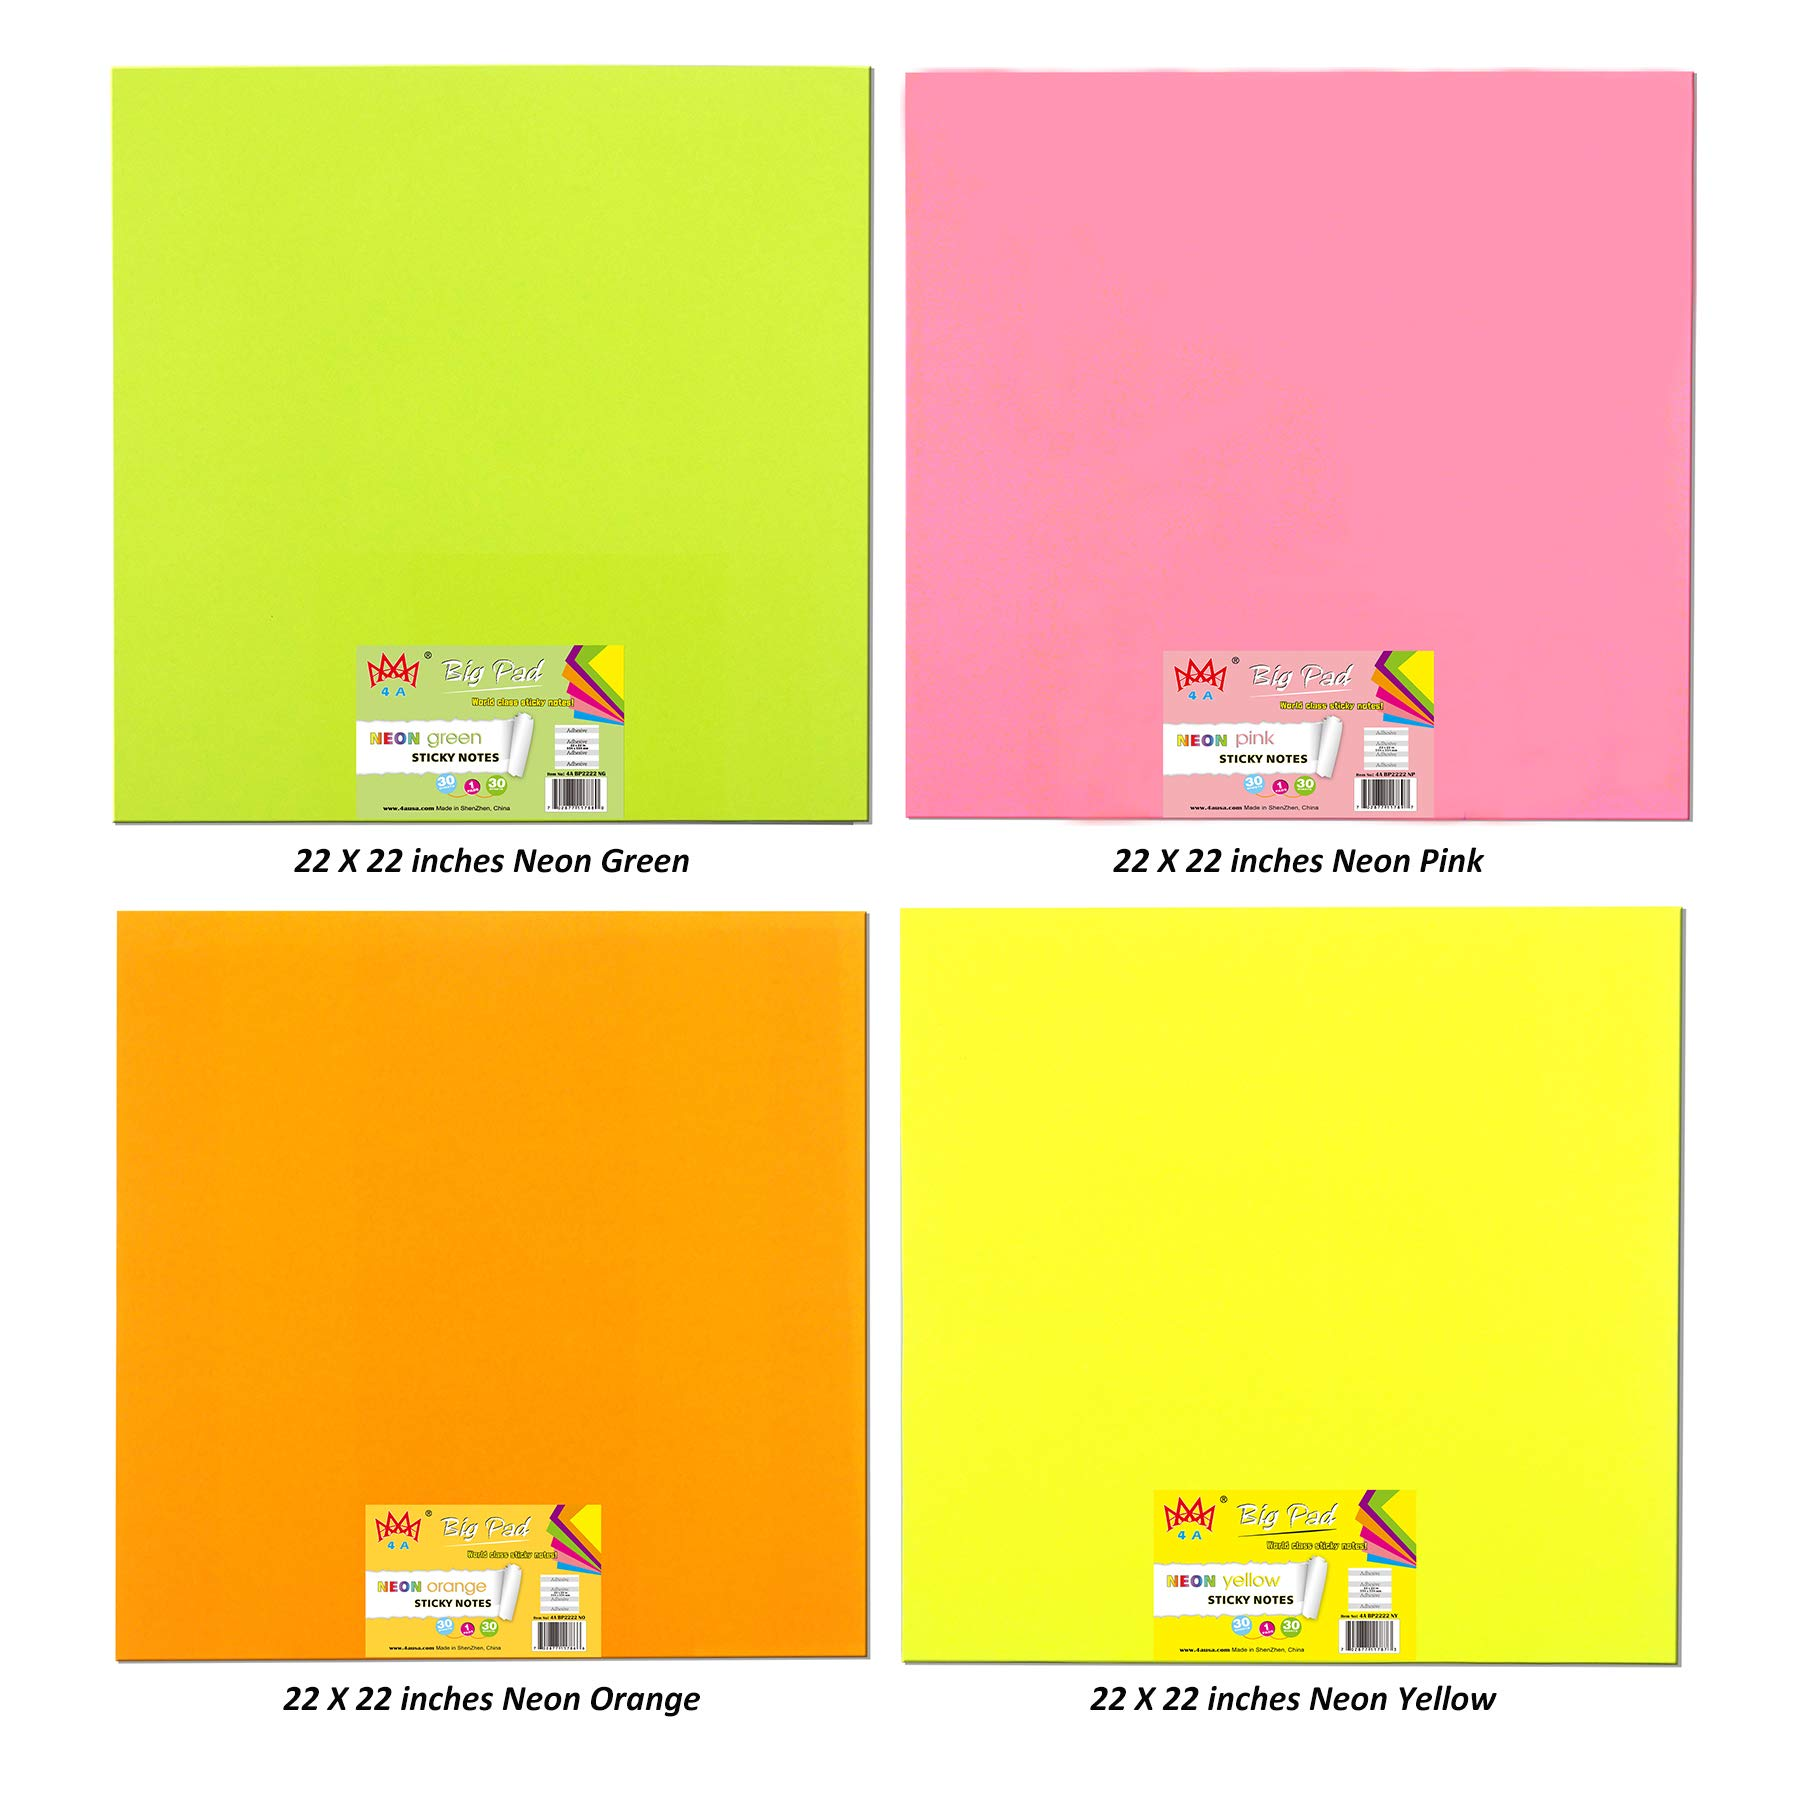 4A Sticky Big Pad,22 x 22 Inches,Large Size,Neon Green,Pink,Orange and Yellow,Self-Stick Notes,30 Sheets/Pad,4 Pad/Pack,4A BP2222 NGPOY